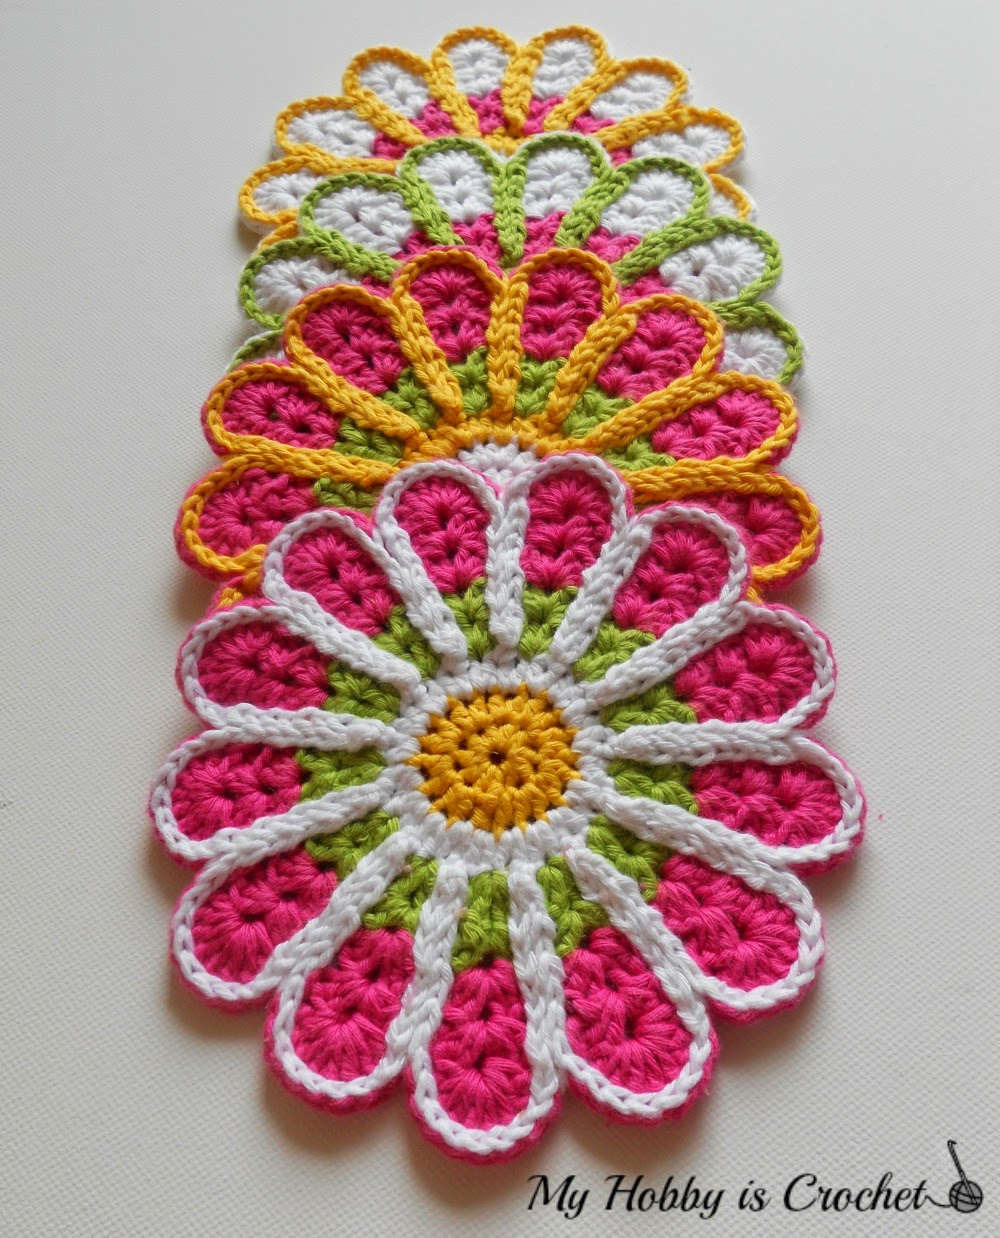 Free Crochet Pattern For Coaster : My Hobby Is Crochet: Chrysanthemum / Flower Coaster ? Free ...